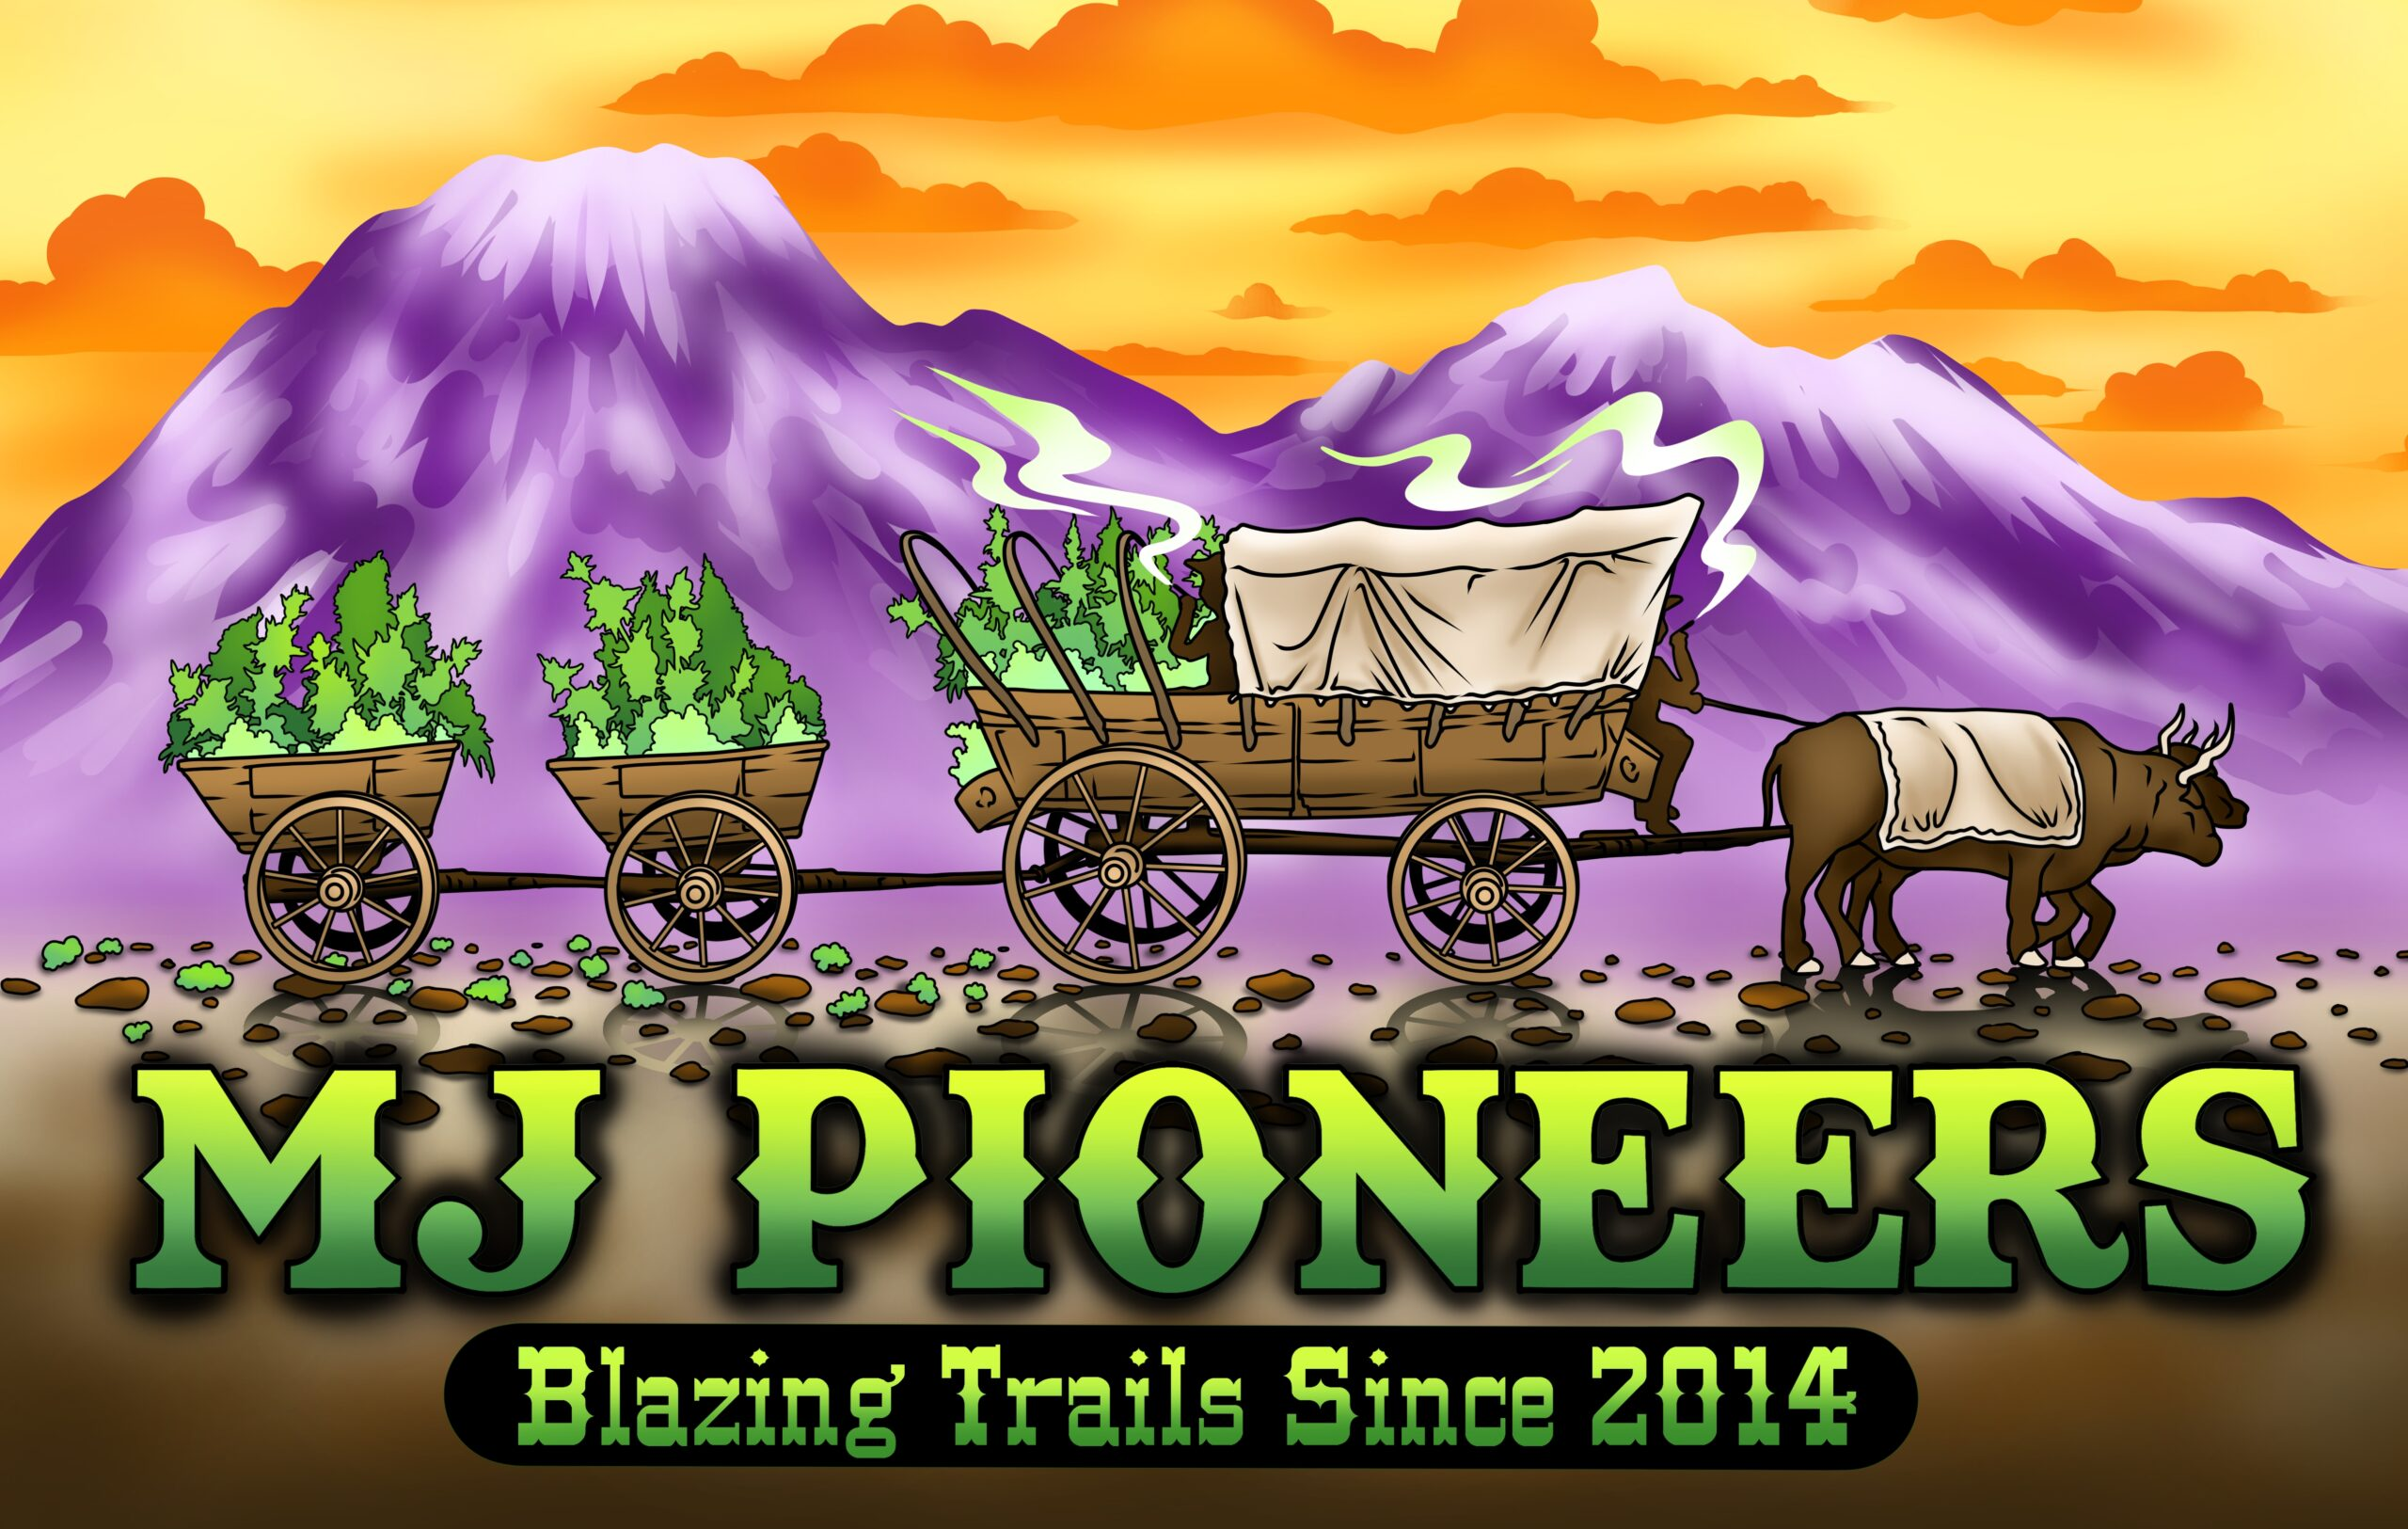 MJ Pioneers Blazing Trails Logo